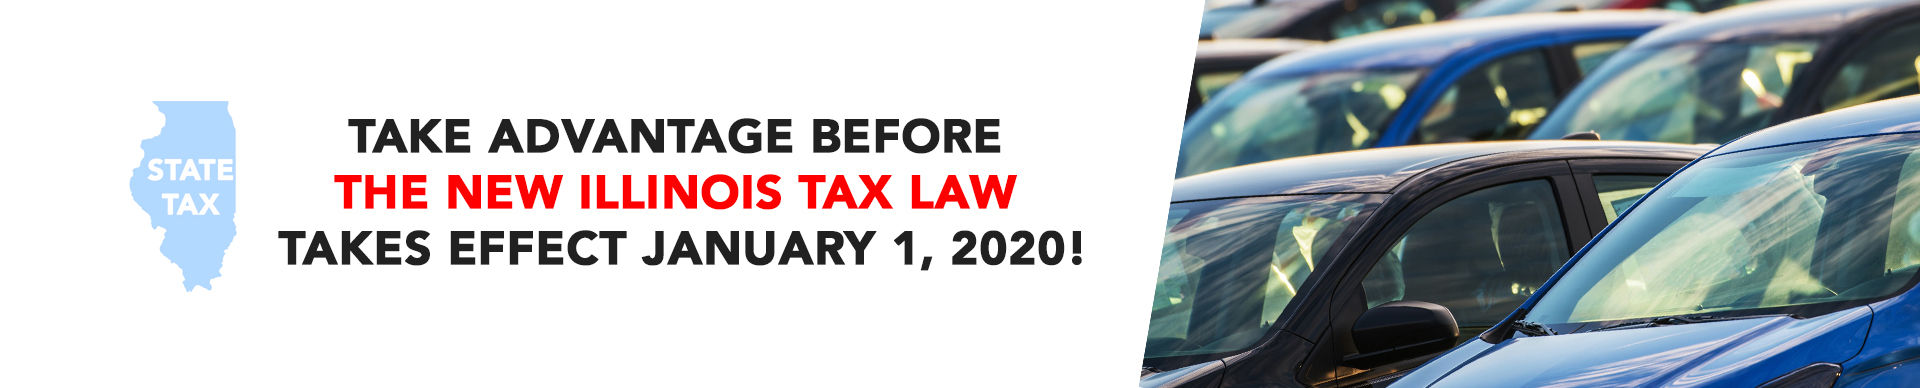 Take advantage before the new Illinois tax law takes effect January 1, 2020!